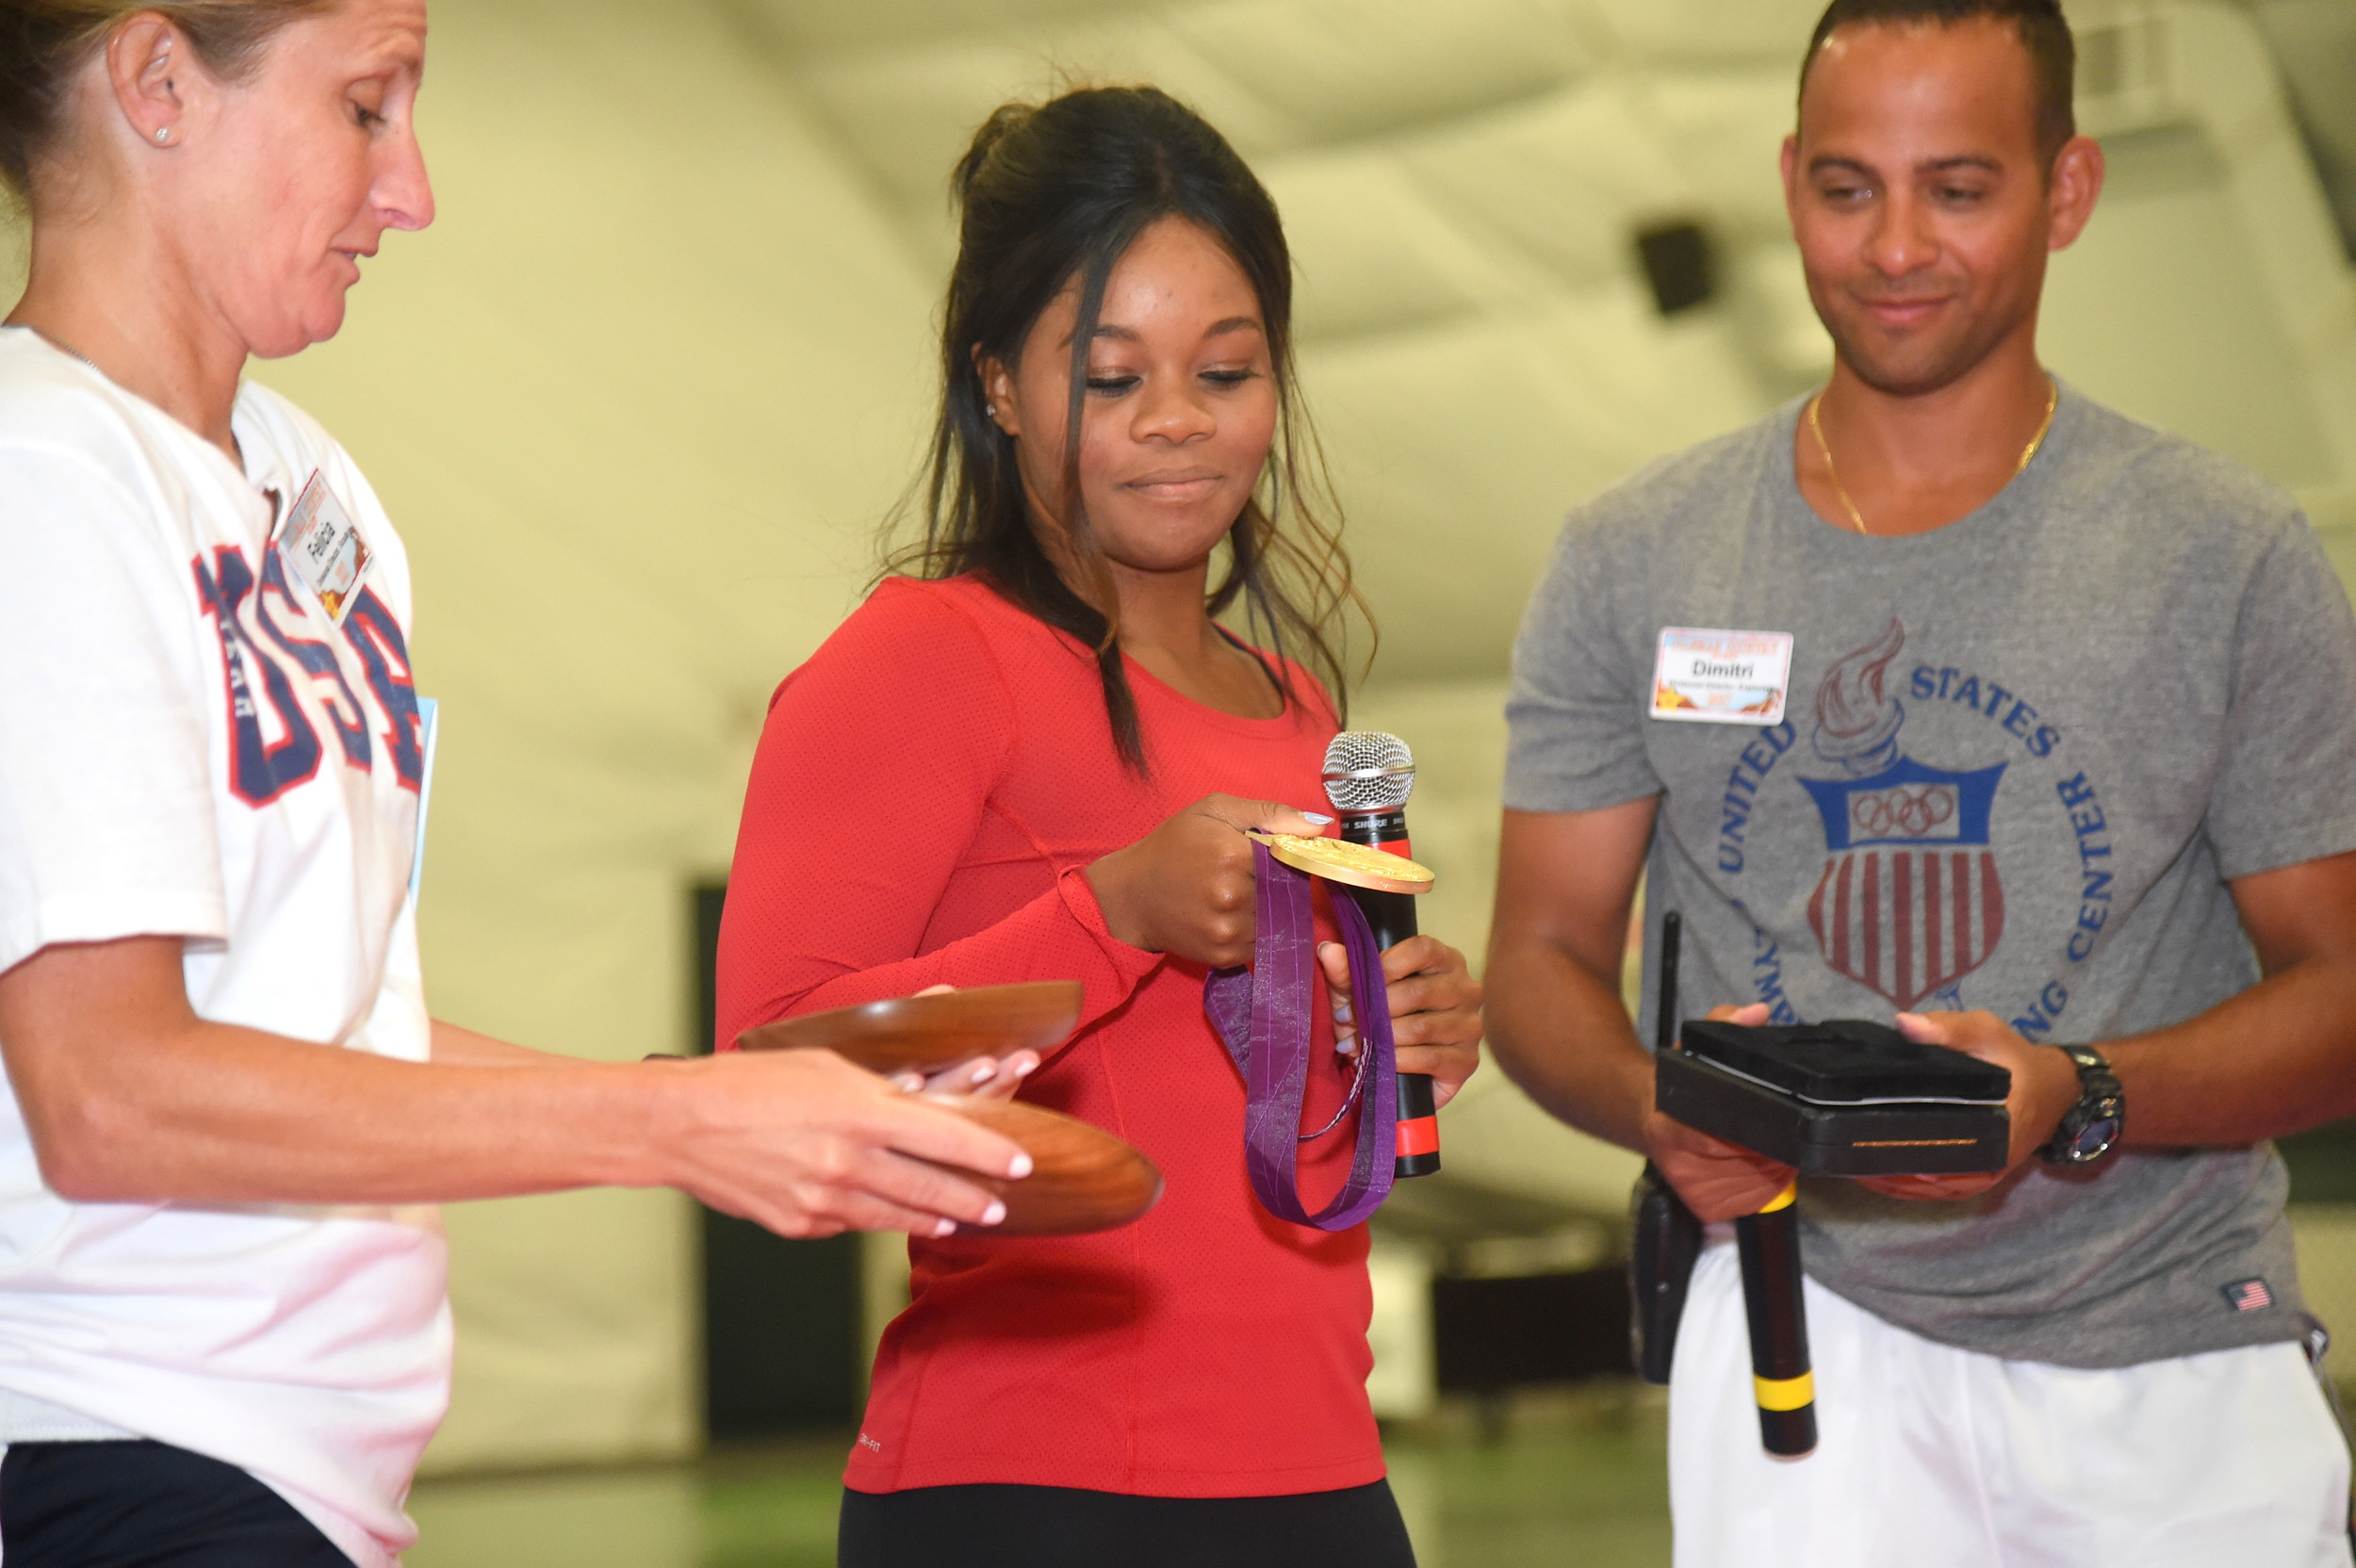 Douglas, joined by two camp employees, showed her medals to campers.